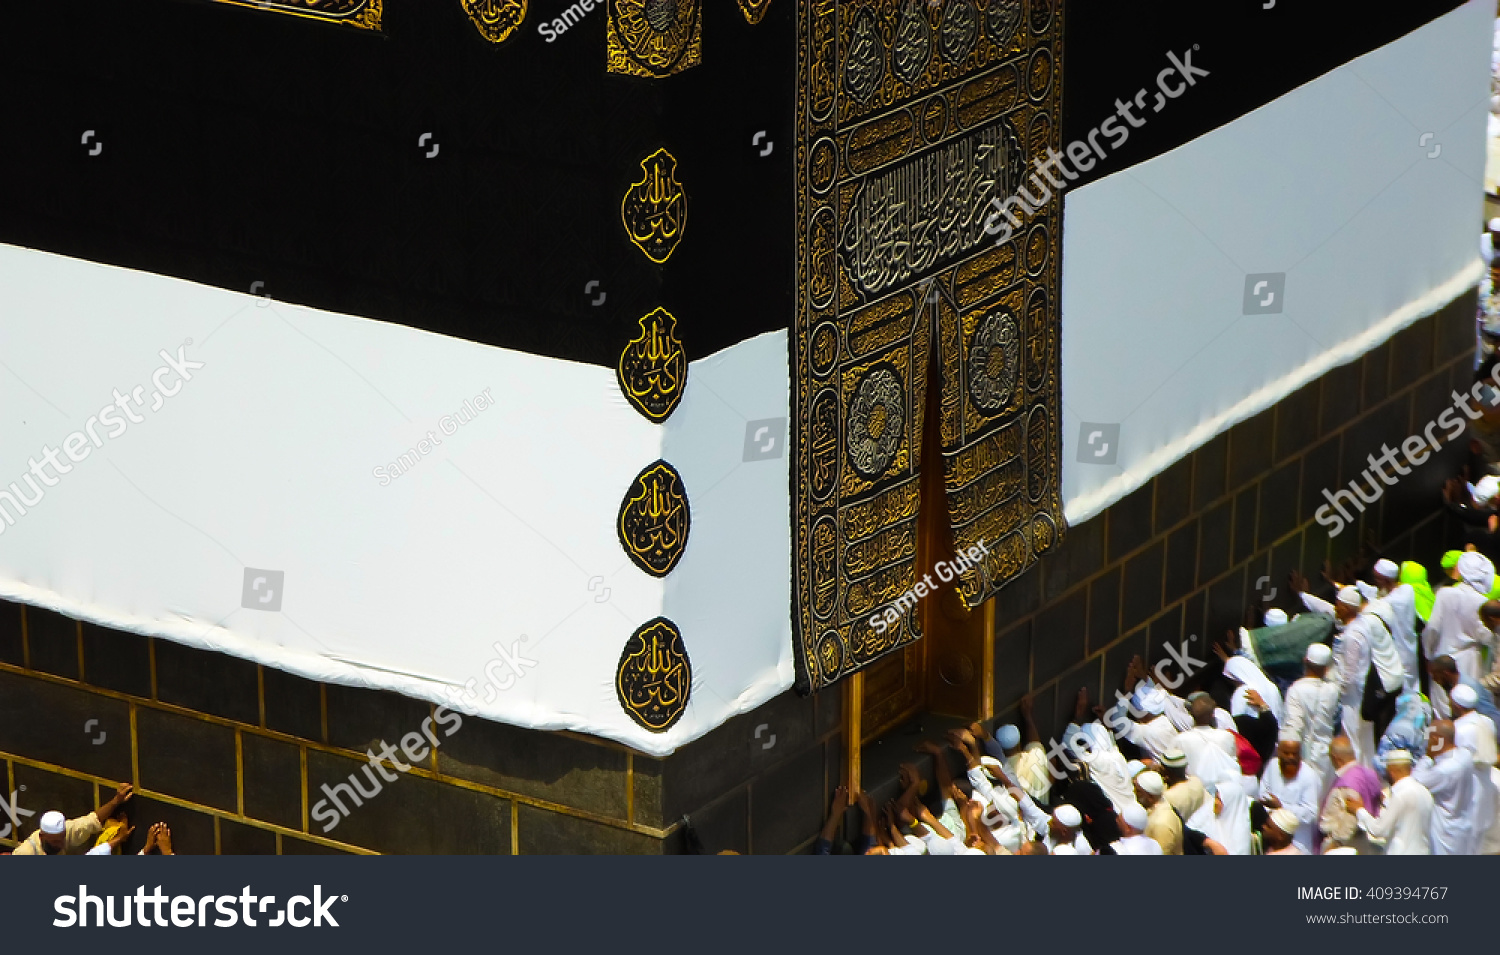 MECCA JUNE 30 Crowd of pilgrims circumambulate around Kaaba on June 30 2015 in Mecca Saudi Arabia Pilgrims circumambulate seven times to show their submission to the religion